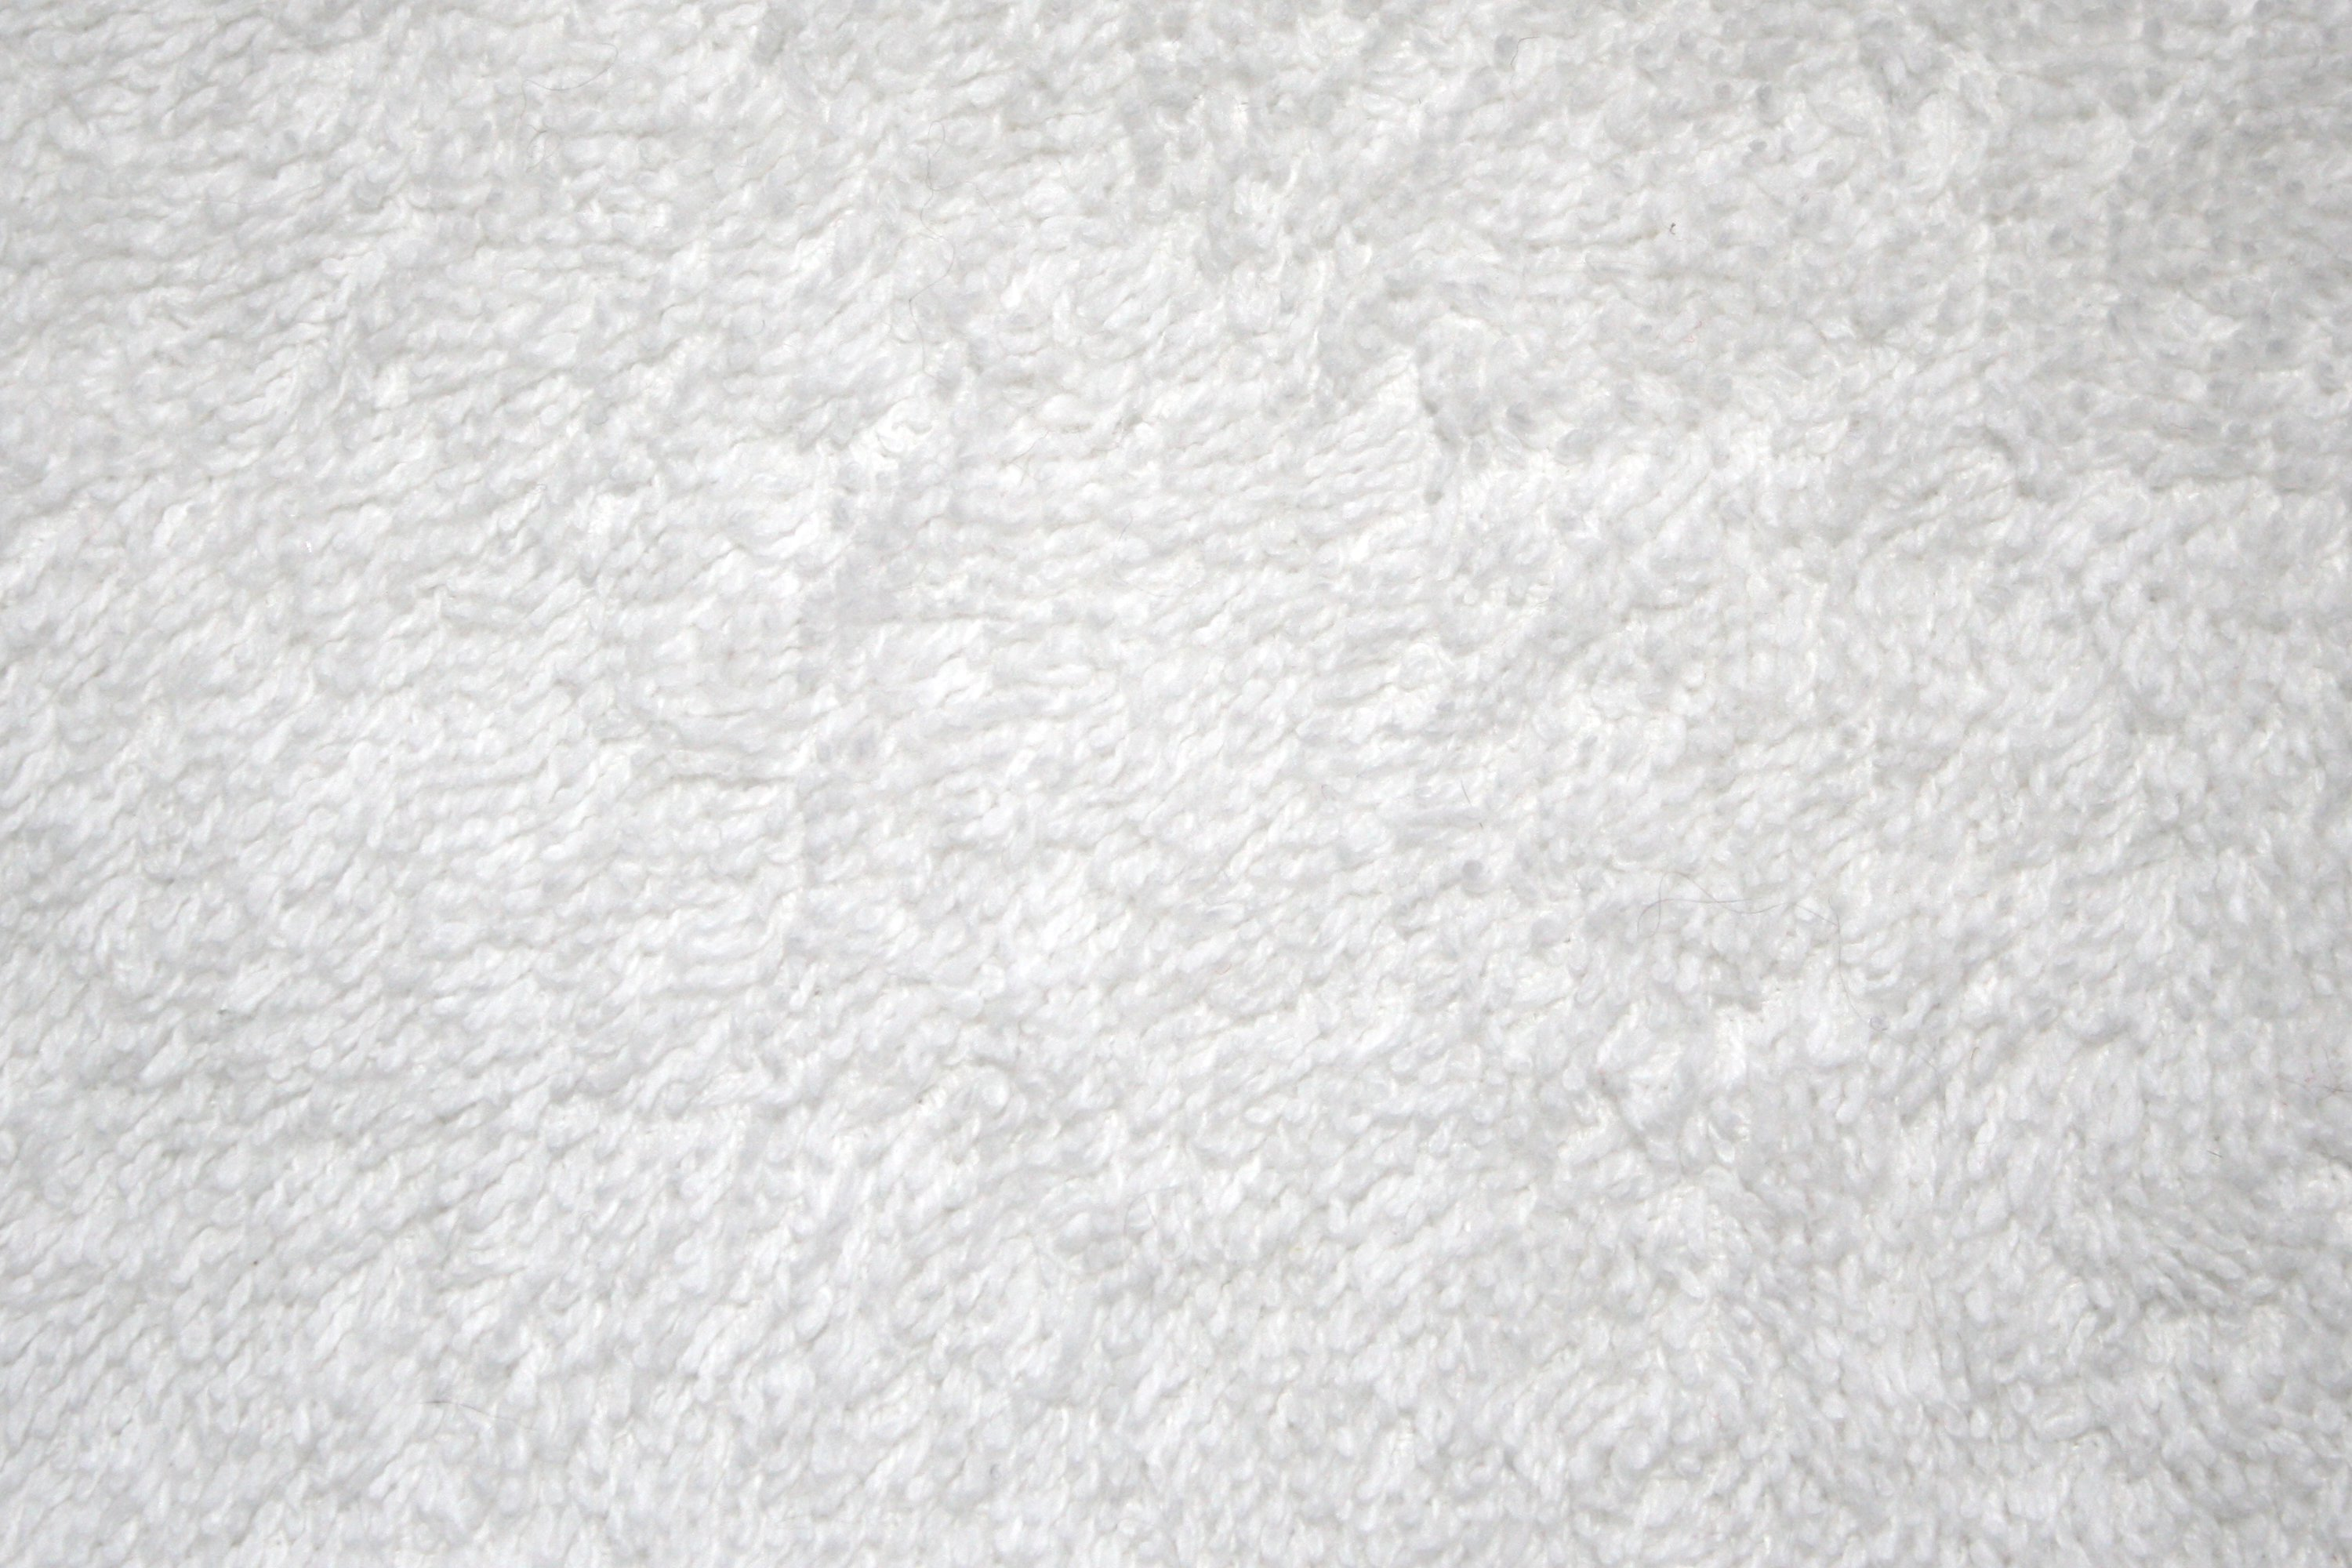 White Wallpaper Texture - WallpaperSafari